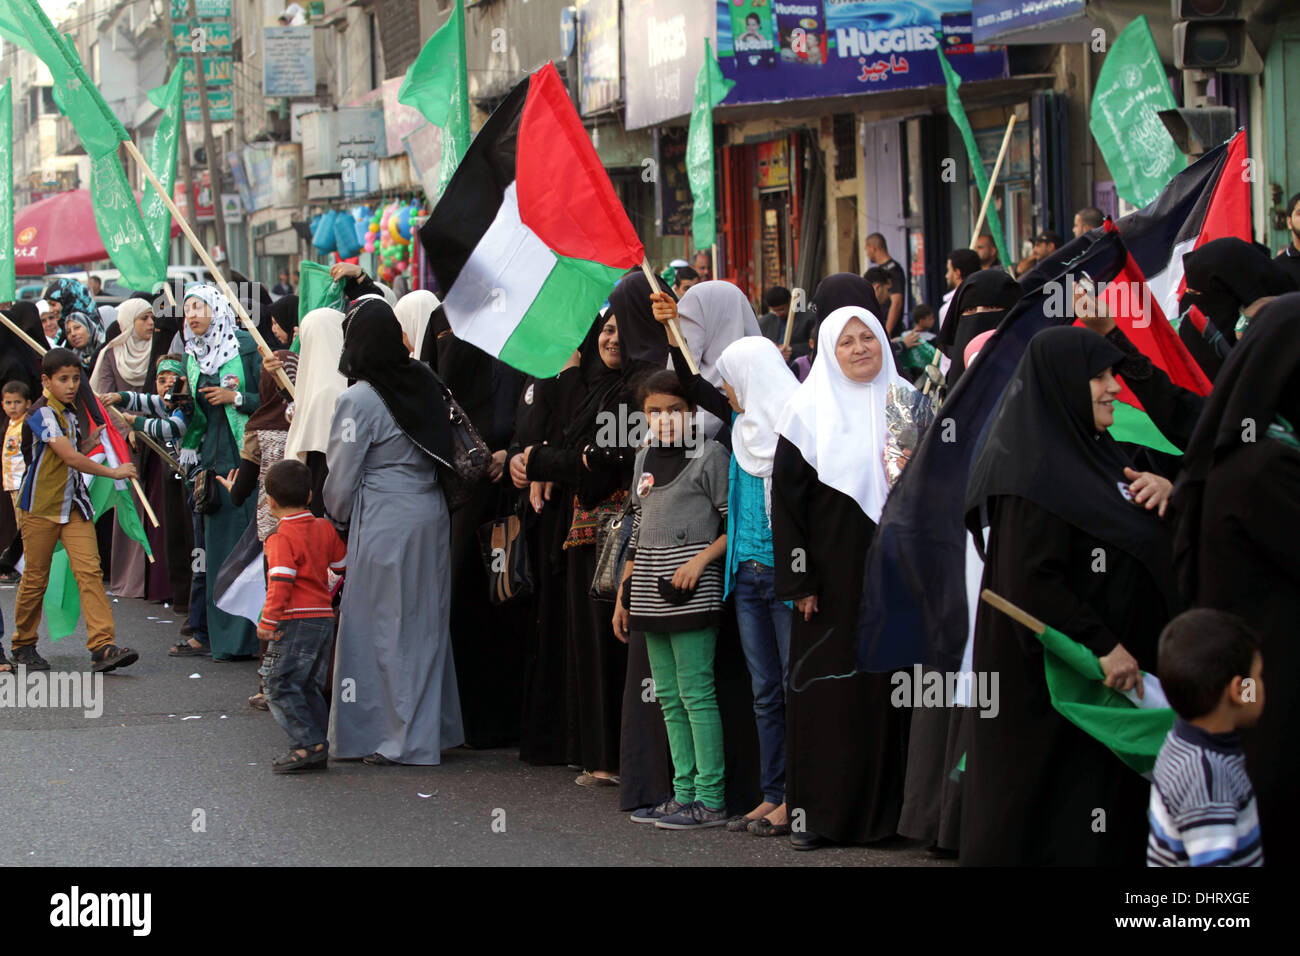 Gaza City, Gaza Strip, Palestinian Territory, . 15th Nov, 2013. Palestinian women take part in an anti-Israel parade as part of the celebrations marking the first anniversary of an Israeli army operation in Gaza, on November 14, 2013. A year after trading fire in a week-long war in Gaza, in which more than 170 Palestinians and six Israelis were killed, Israel and Hamas are squaring up for another confrontation, despite both sides appearing reluctant to make the first move © Ashraf Amra/APA Images/ZUMAPRESS.com/Alamy Live News - Stock Image